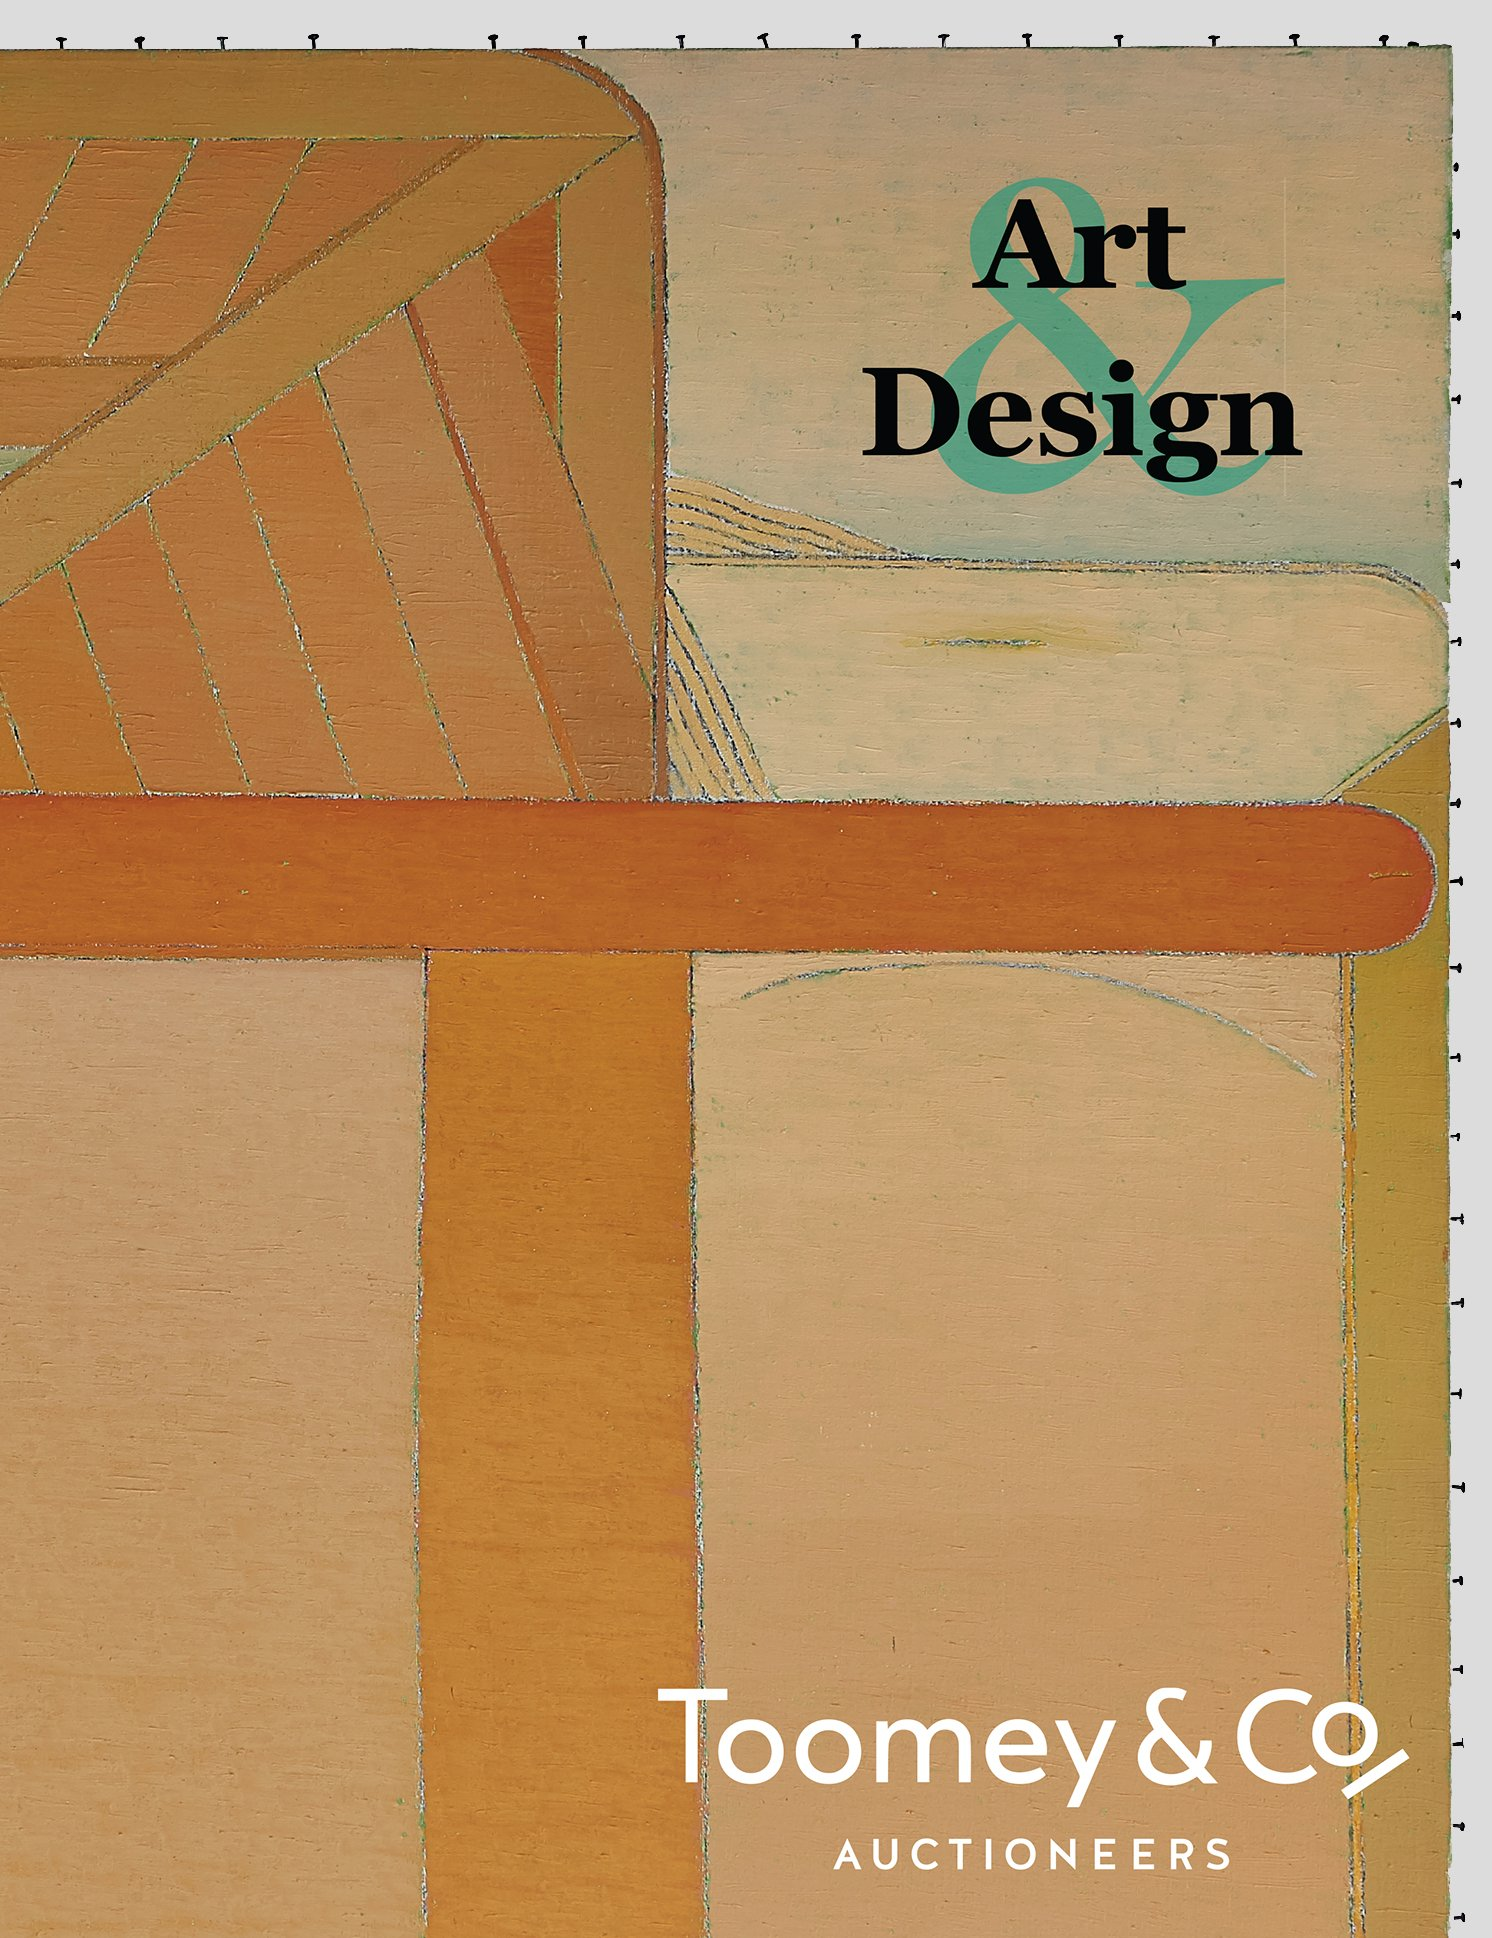 Art and Design Catalog, June 24, 2018